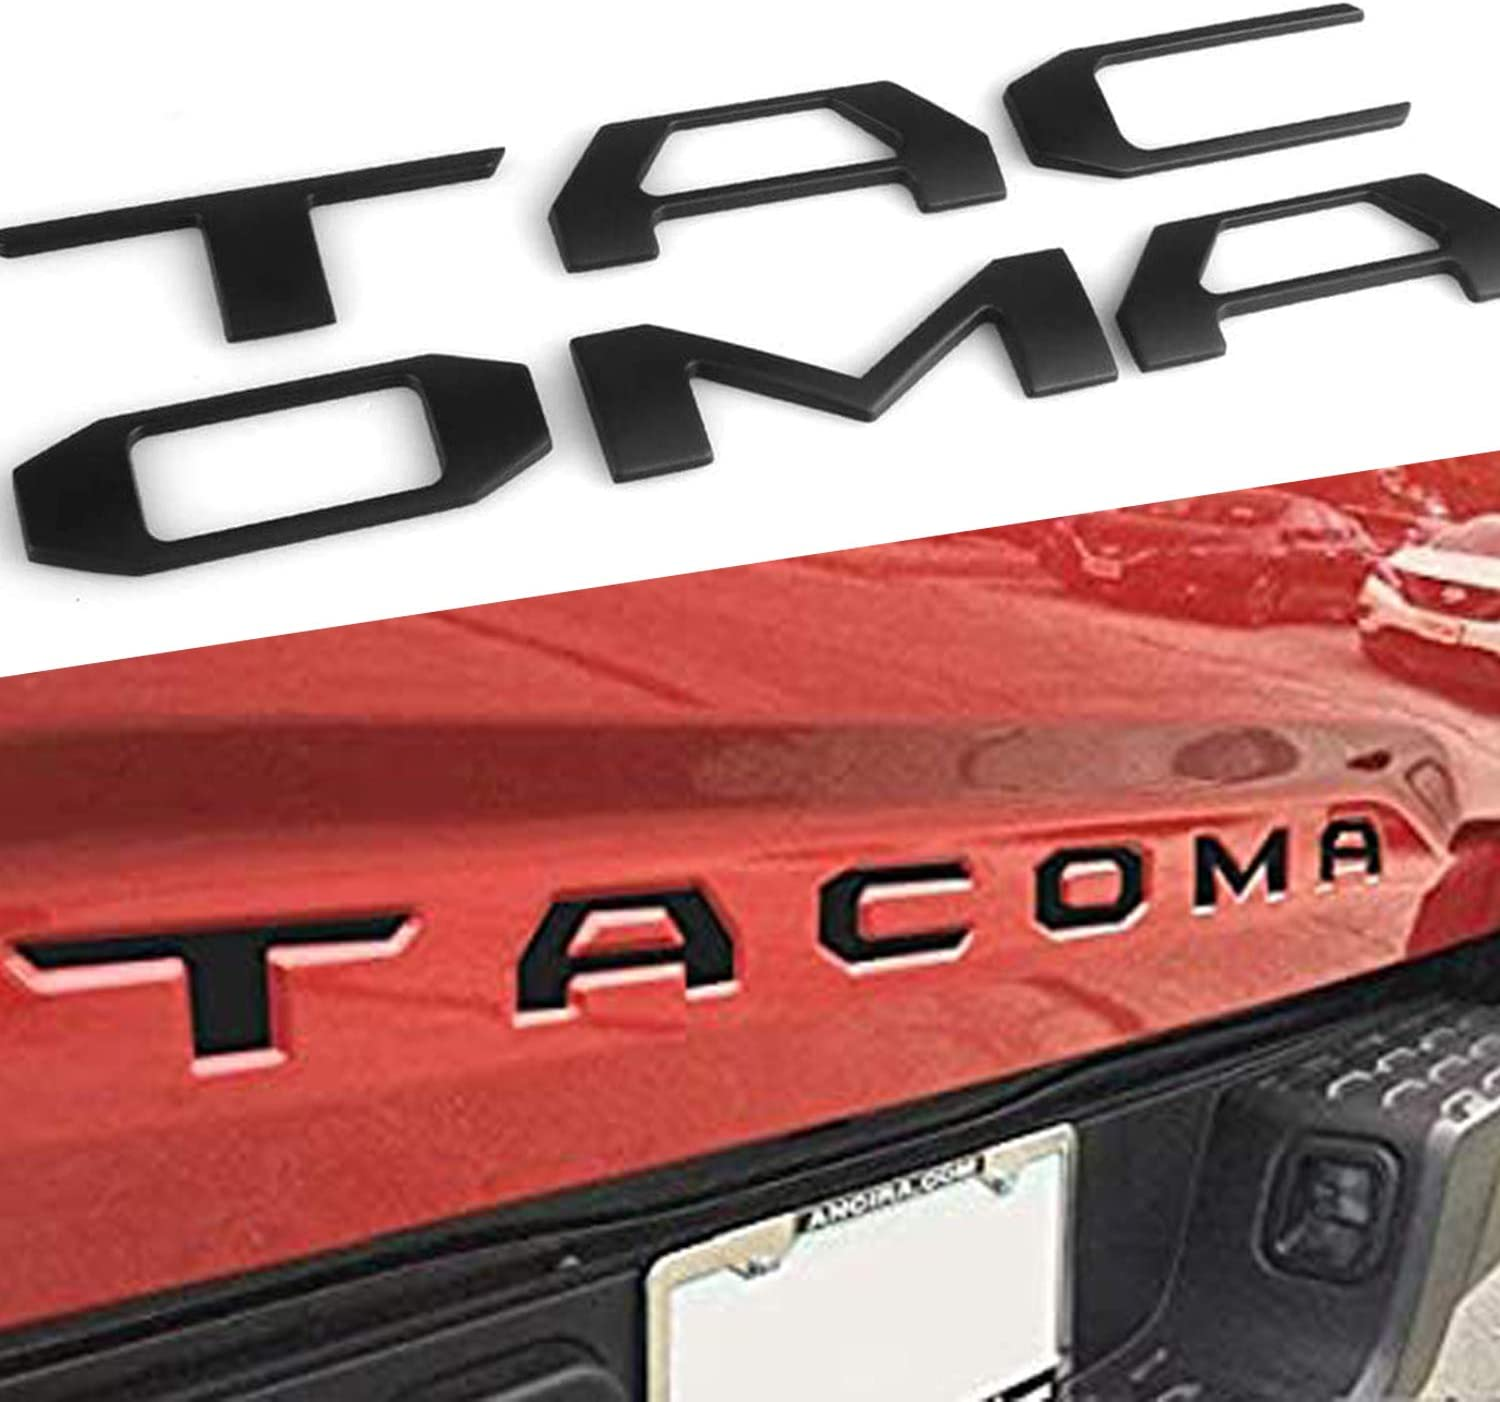 Red Tacoma Tailgate Letters Auto safety Tailgate Insert Letters for Toyota Tacoma 2016 2017 2018 2019 2020 3D Raised /Rear Emblem Decals with seccotine